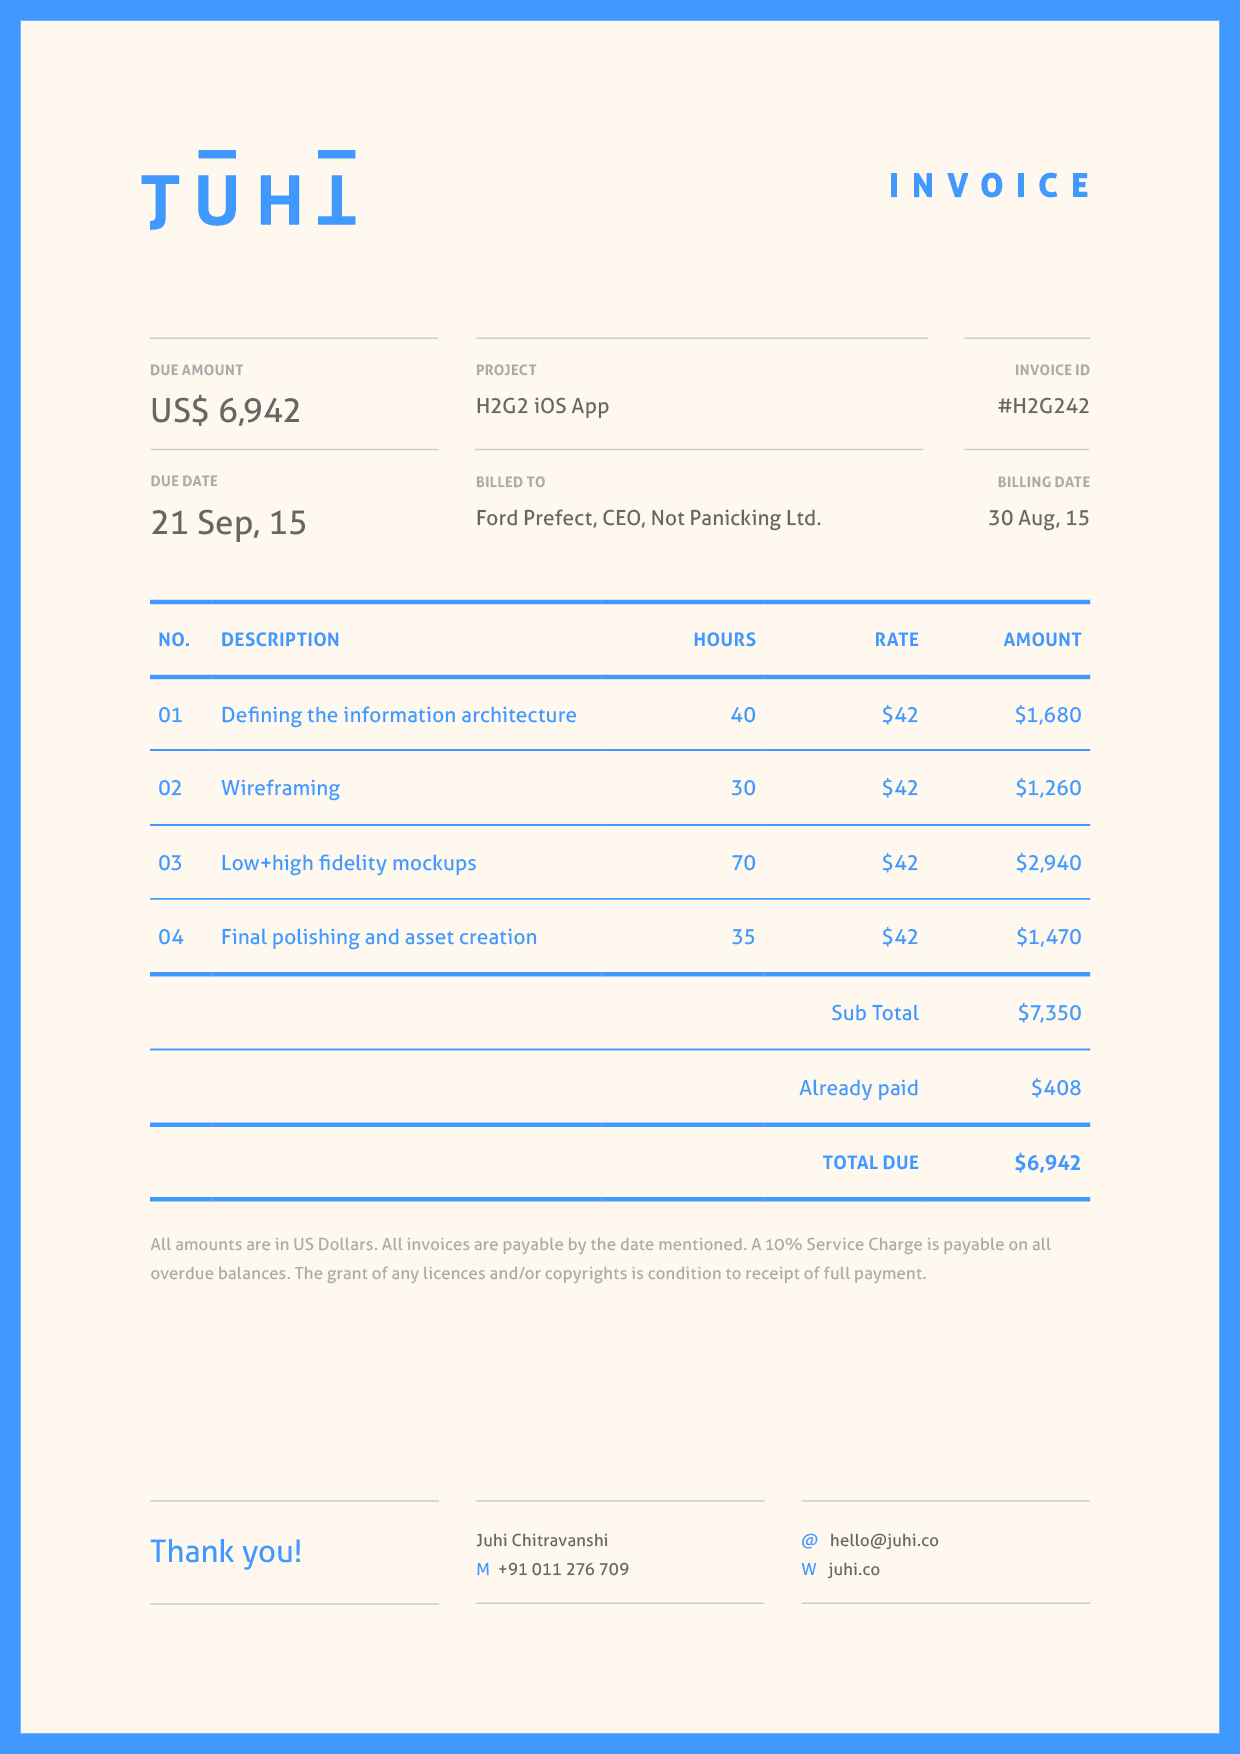 Coachoutletonlineplusus  Surprising Dont Hold Back On Your Invoice  Inspiring Designs  With Lovely Invoice By Juhi Chitravanshi Follow With Cute Auto Repair Invoice Template Free Also Emailing Invoices In Addition Express Invoice Torrent And  Camry Invoice As Well As Free Invoice Software Download For Small Business Additionally Simple Invoice Maker From Inspirationfeedcom With Coachoutletonlineplusus  Lovely Dont Hold Back On Your Invoice  Inspiring Designs  With Cute Invoice By Juhi Chitravanshi Follow And Surprising Auto Repair Invoice Template Free Also Emailing Invoices In Addition Express Invoice Torrent From Inspirationfeedcom